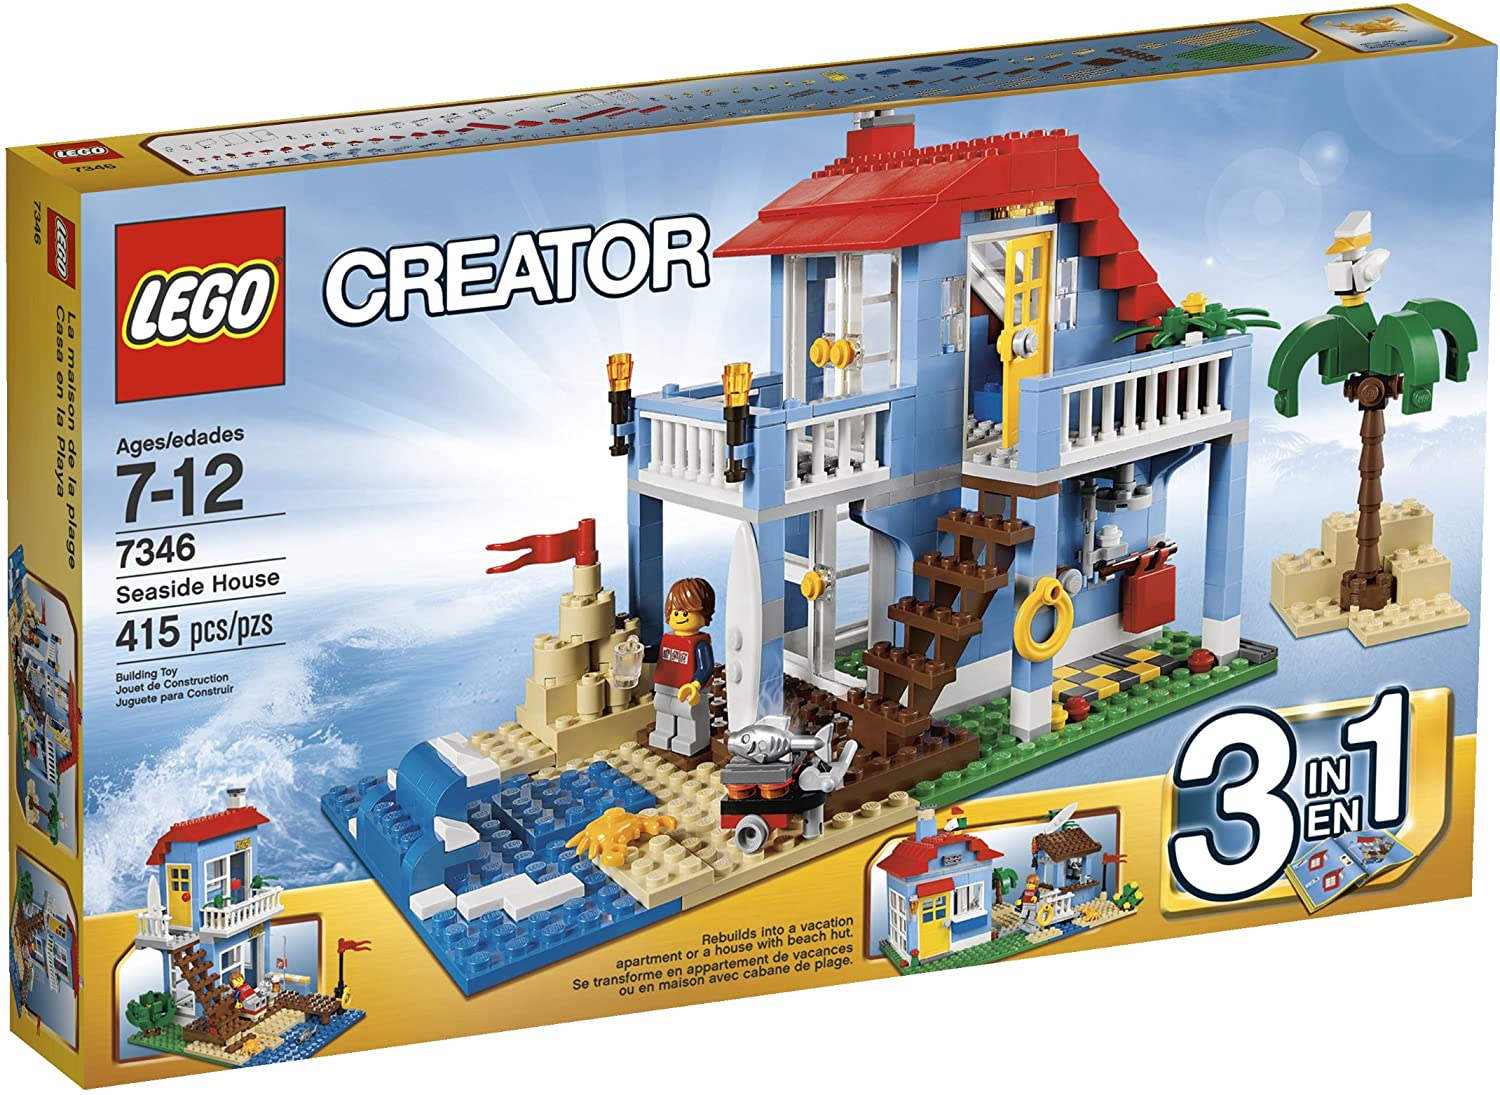 Creator Seaside House (7346)